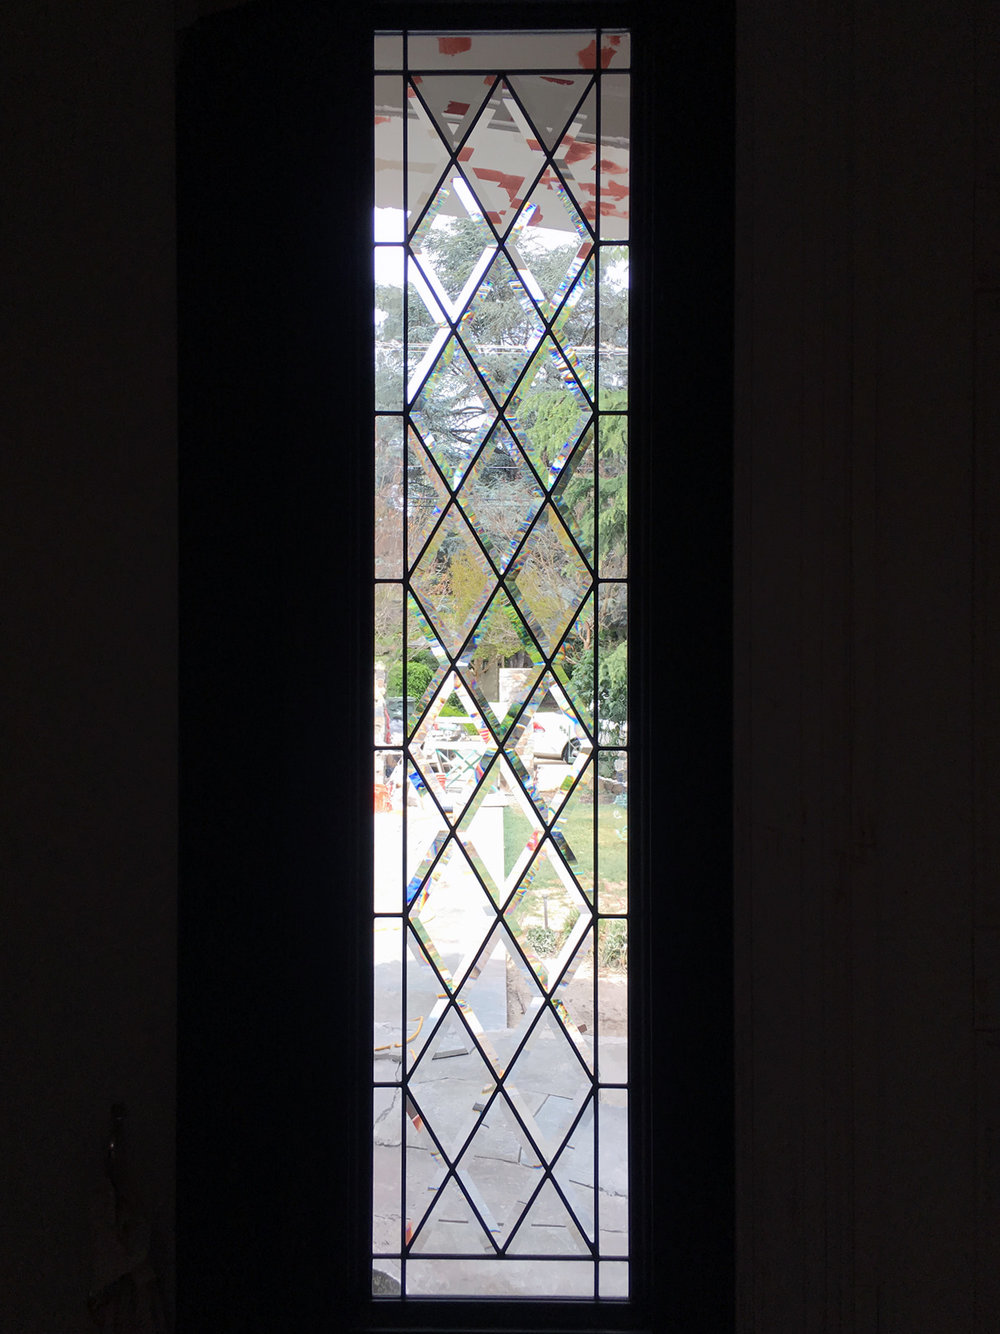 beveled leaded glass stained glass sidelight window palo alto atherton california san francisco.jpg